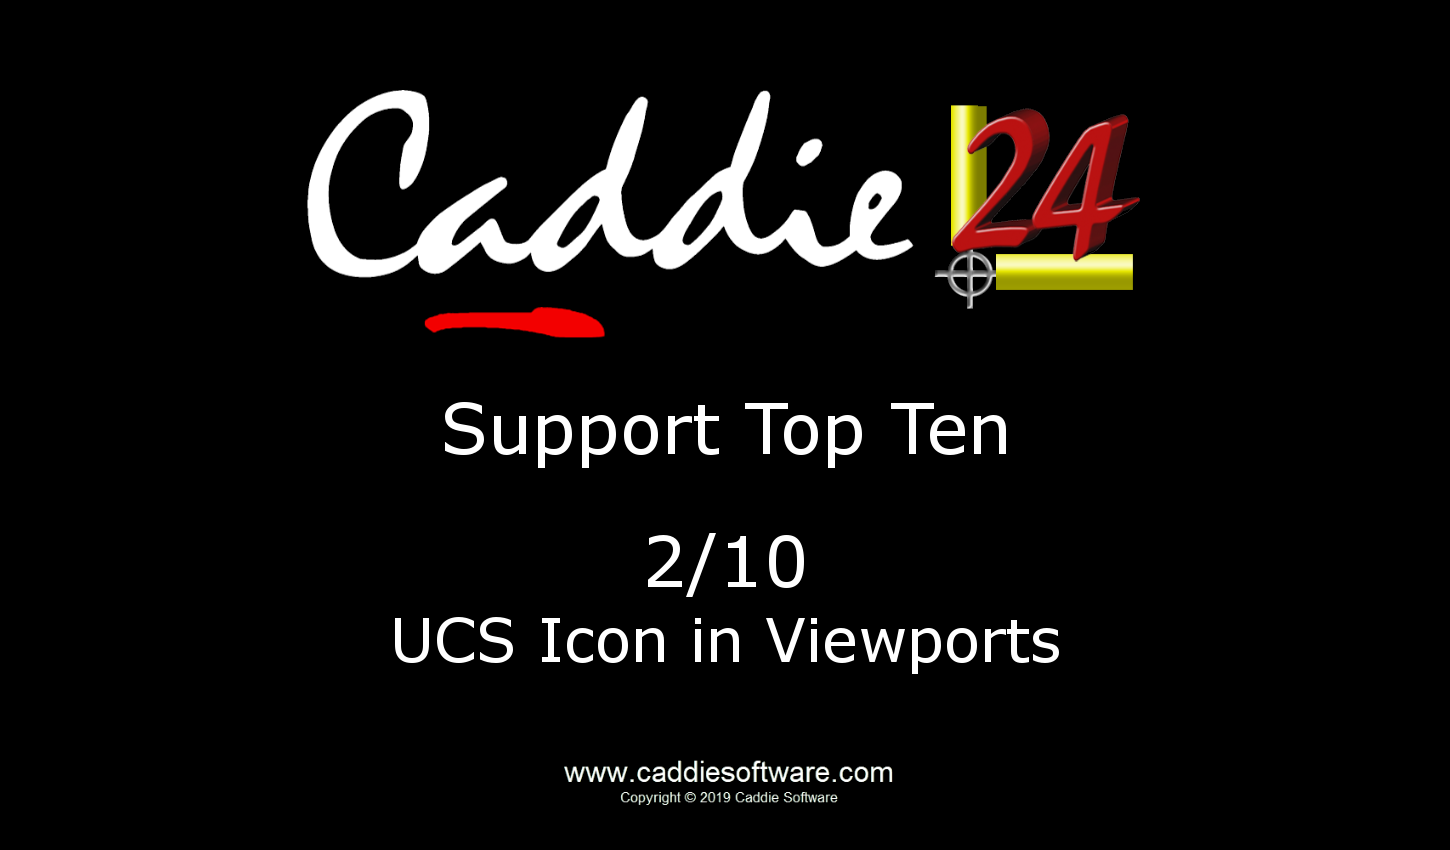 # 2/10 USC Icon in Viewports